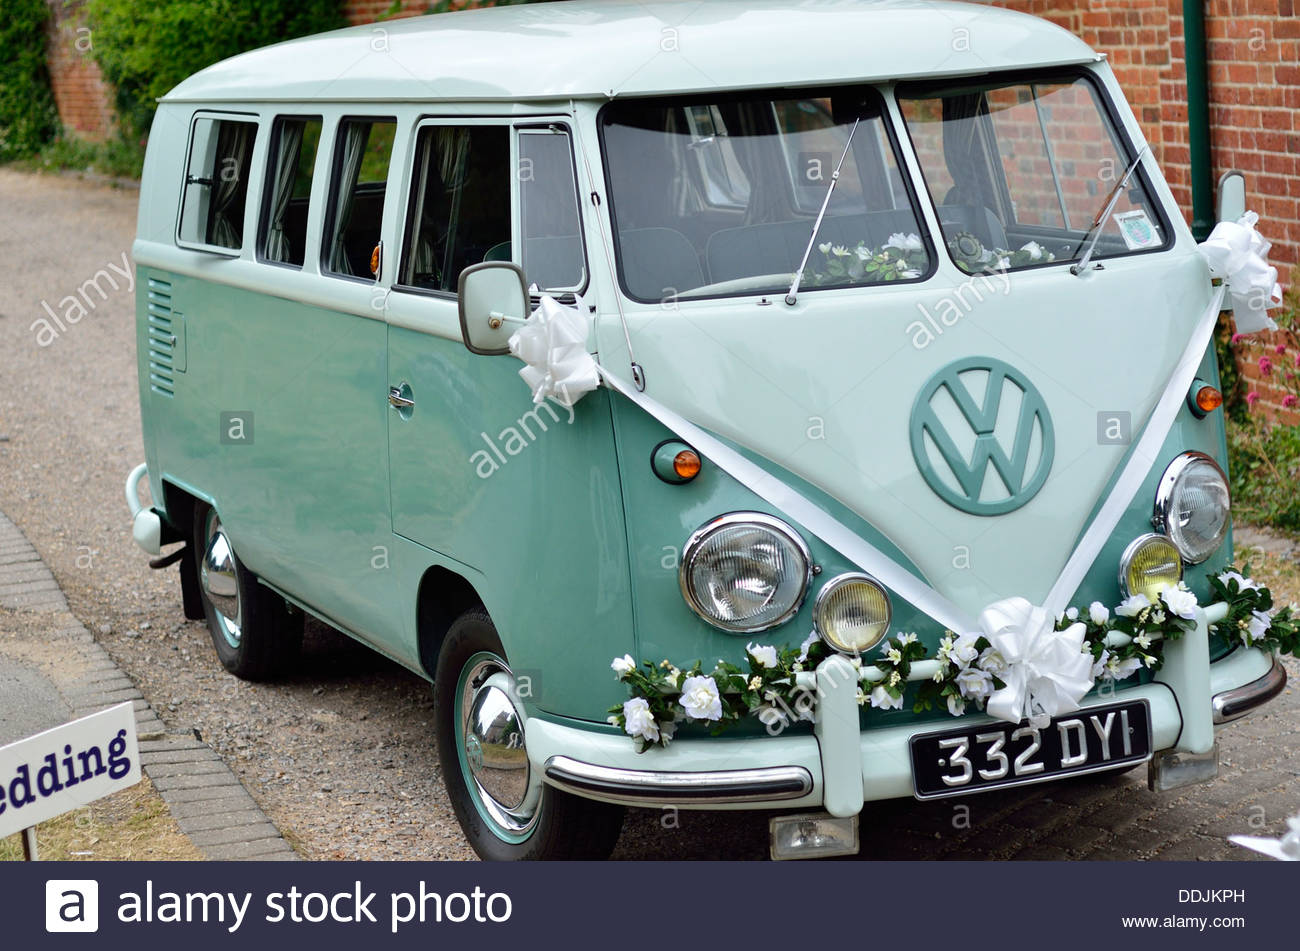 VW Camper Van | Ireland com Community